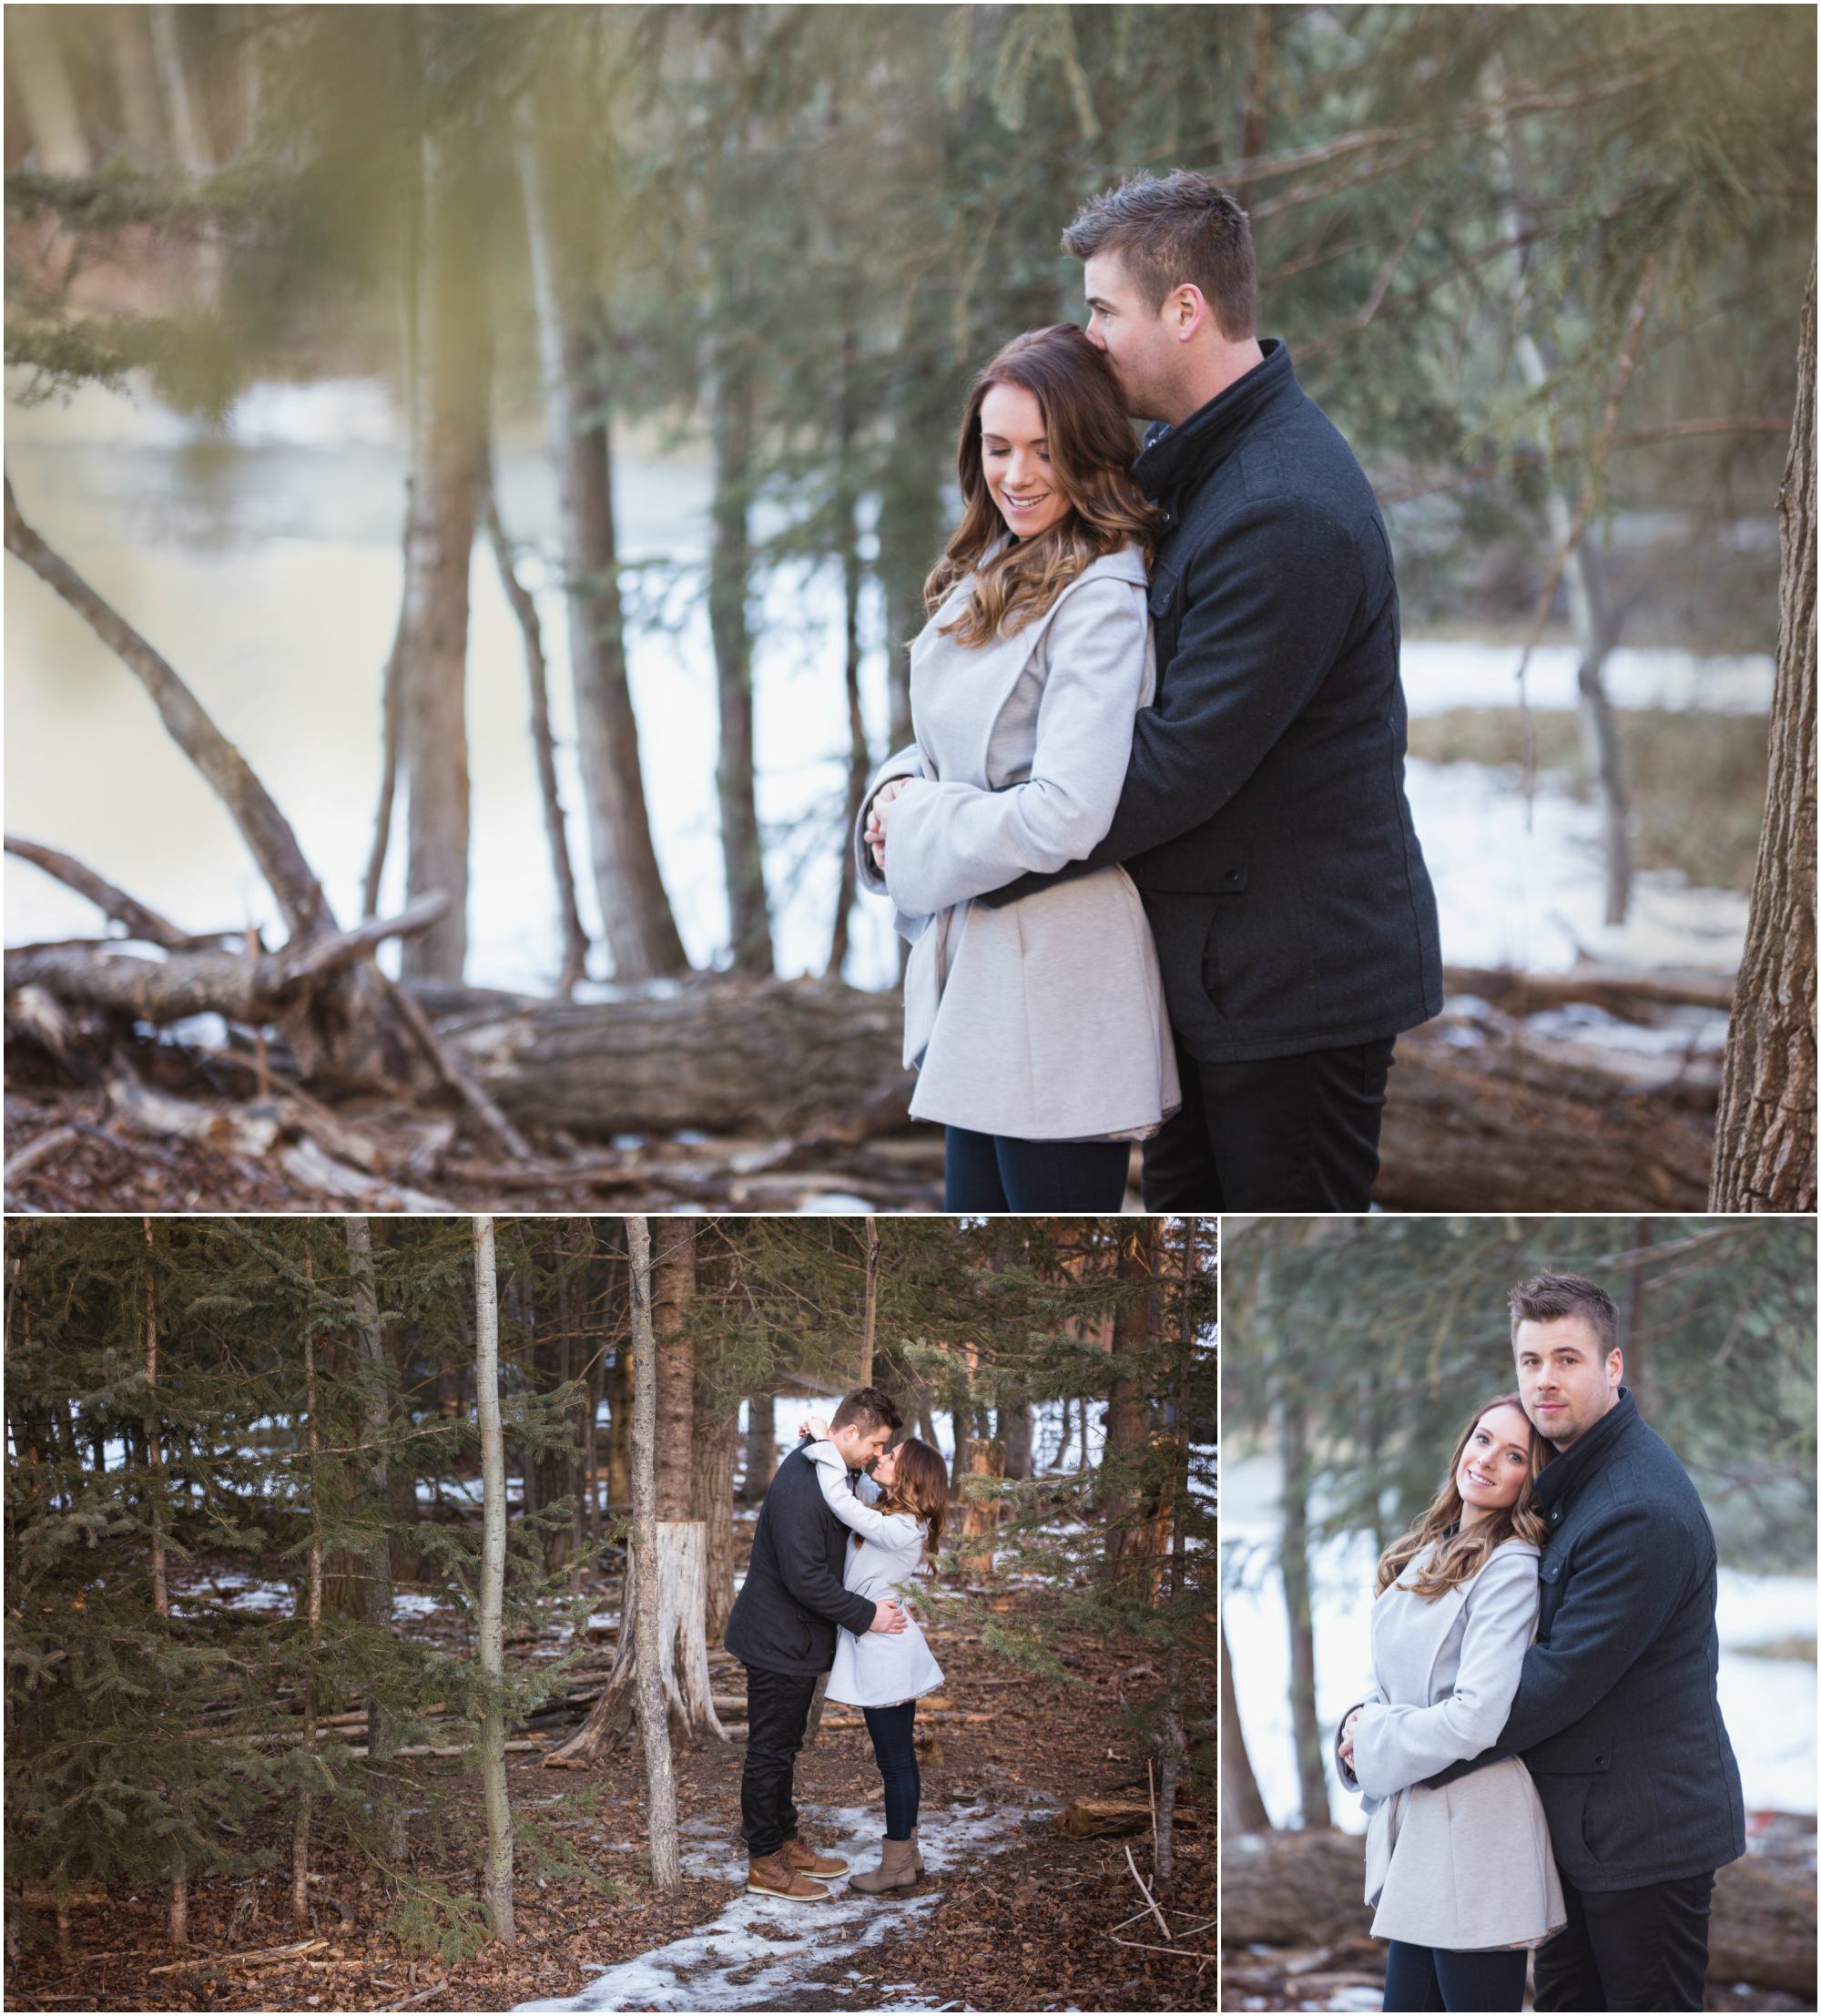 elkwater_engagement_photos_02.png